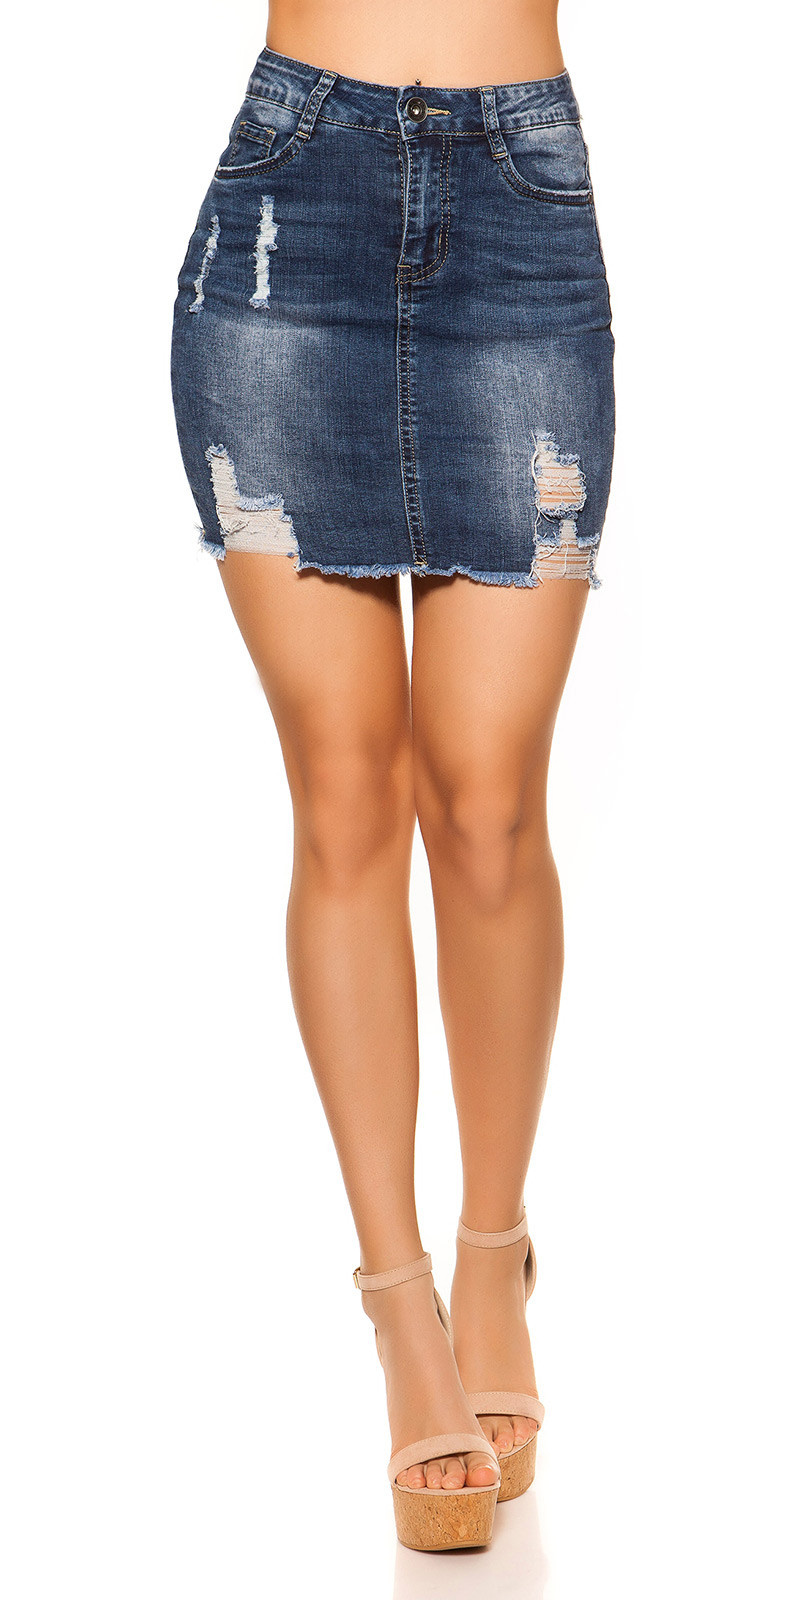 Sexy Jeans mini skirt used look 5 pockets Jeansblue